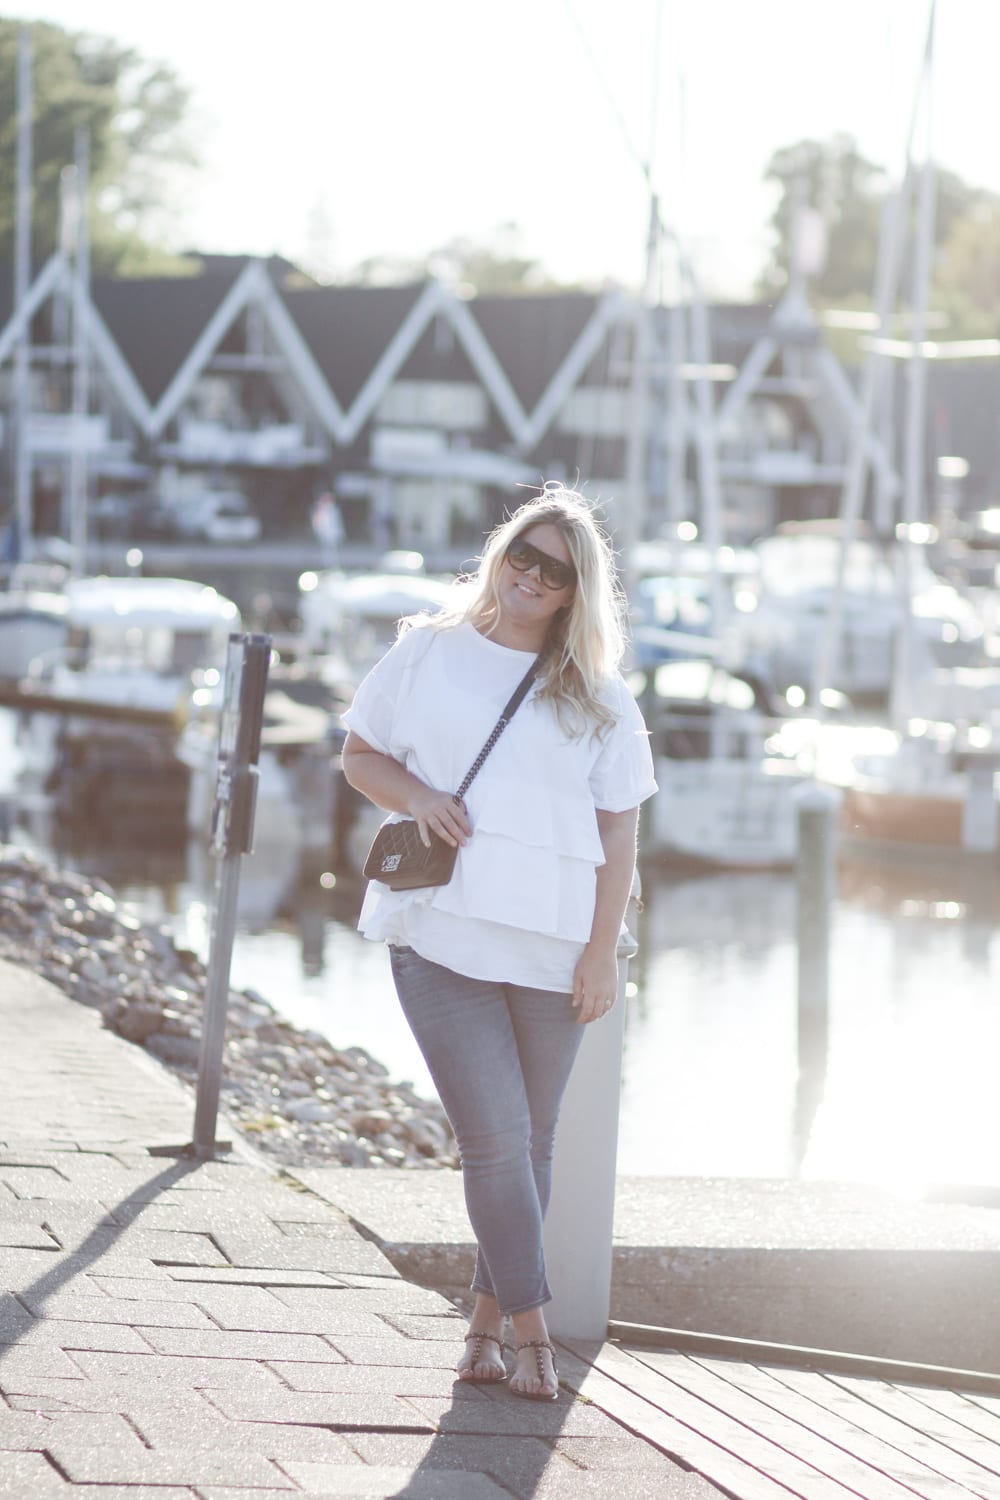 acie-outfit-rungsted-zara-tee-flaeser-celine-8-of-23